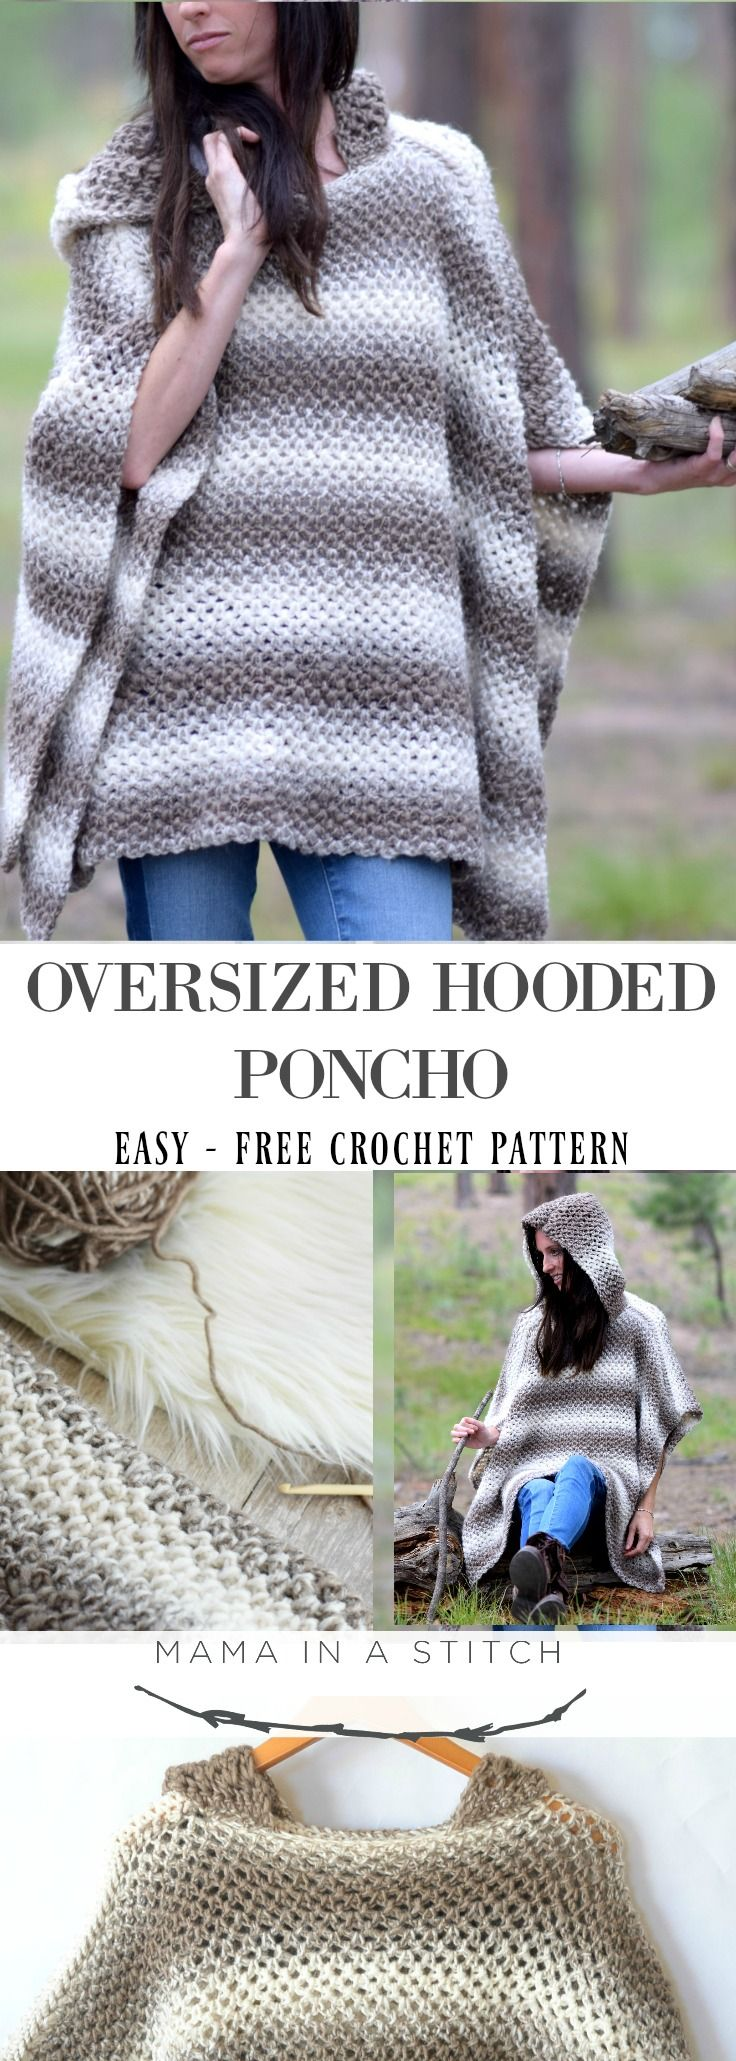 Driftwood Oversized Crochet Hooded Poncho Pattern via @MamaInAStitch ...